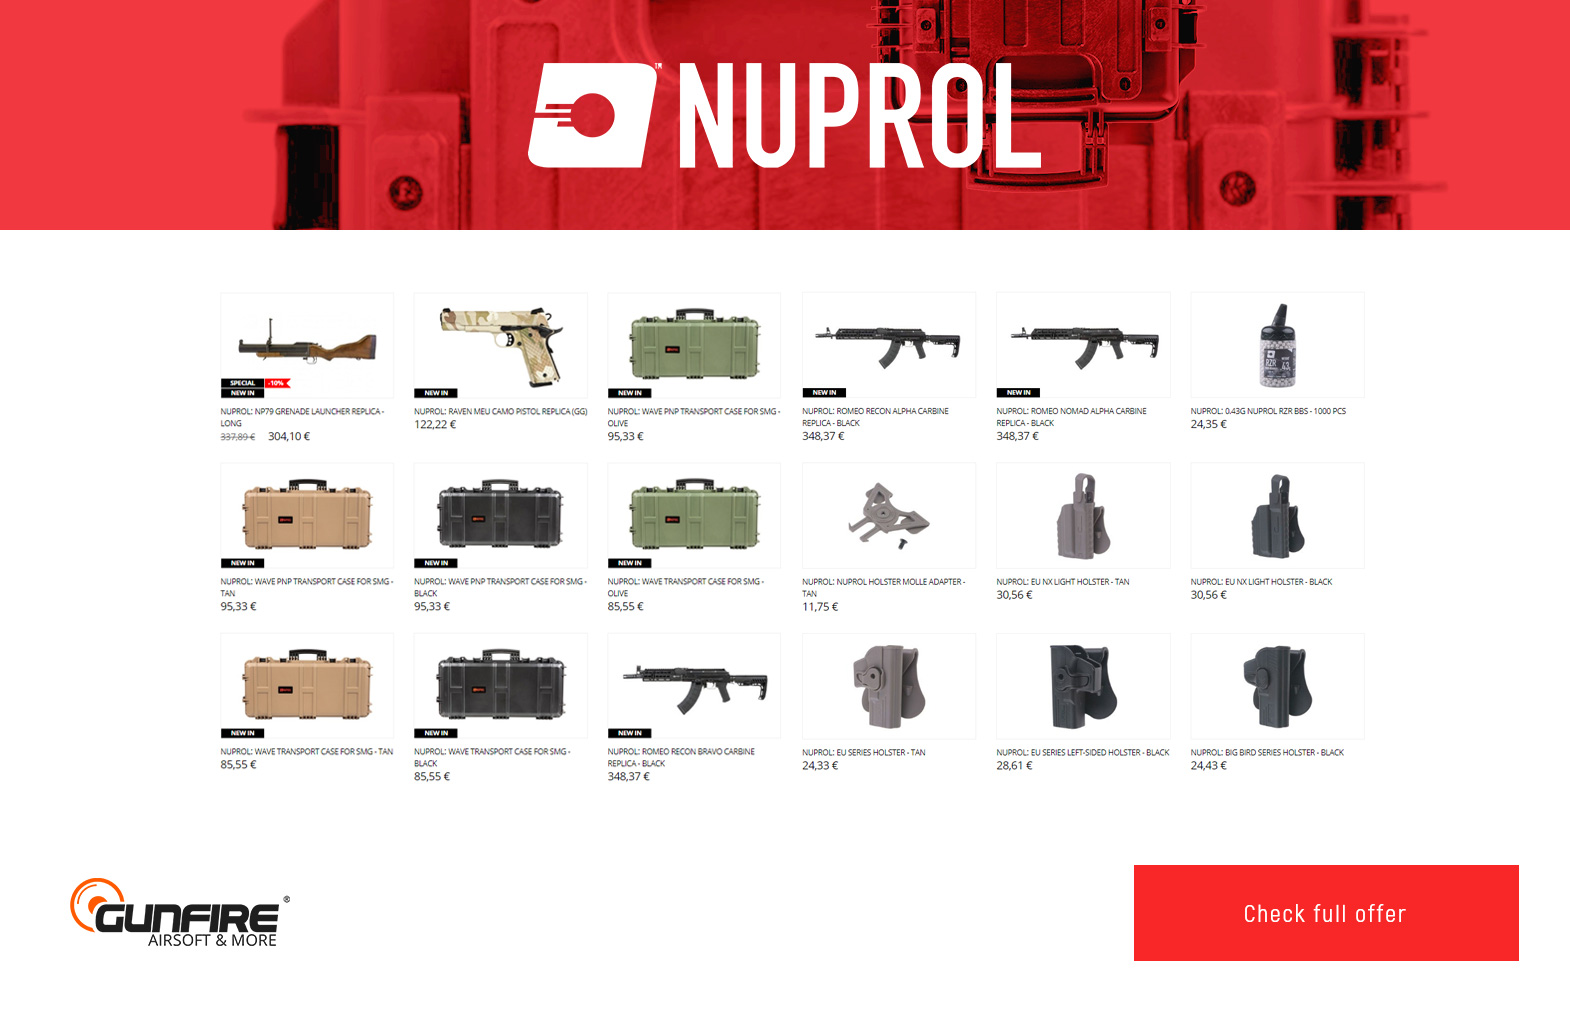 New products from Umarex, GATE, Nuprol and Airosft Pro at Gunfire